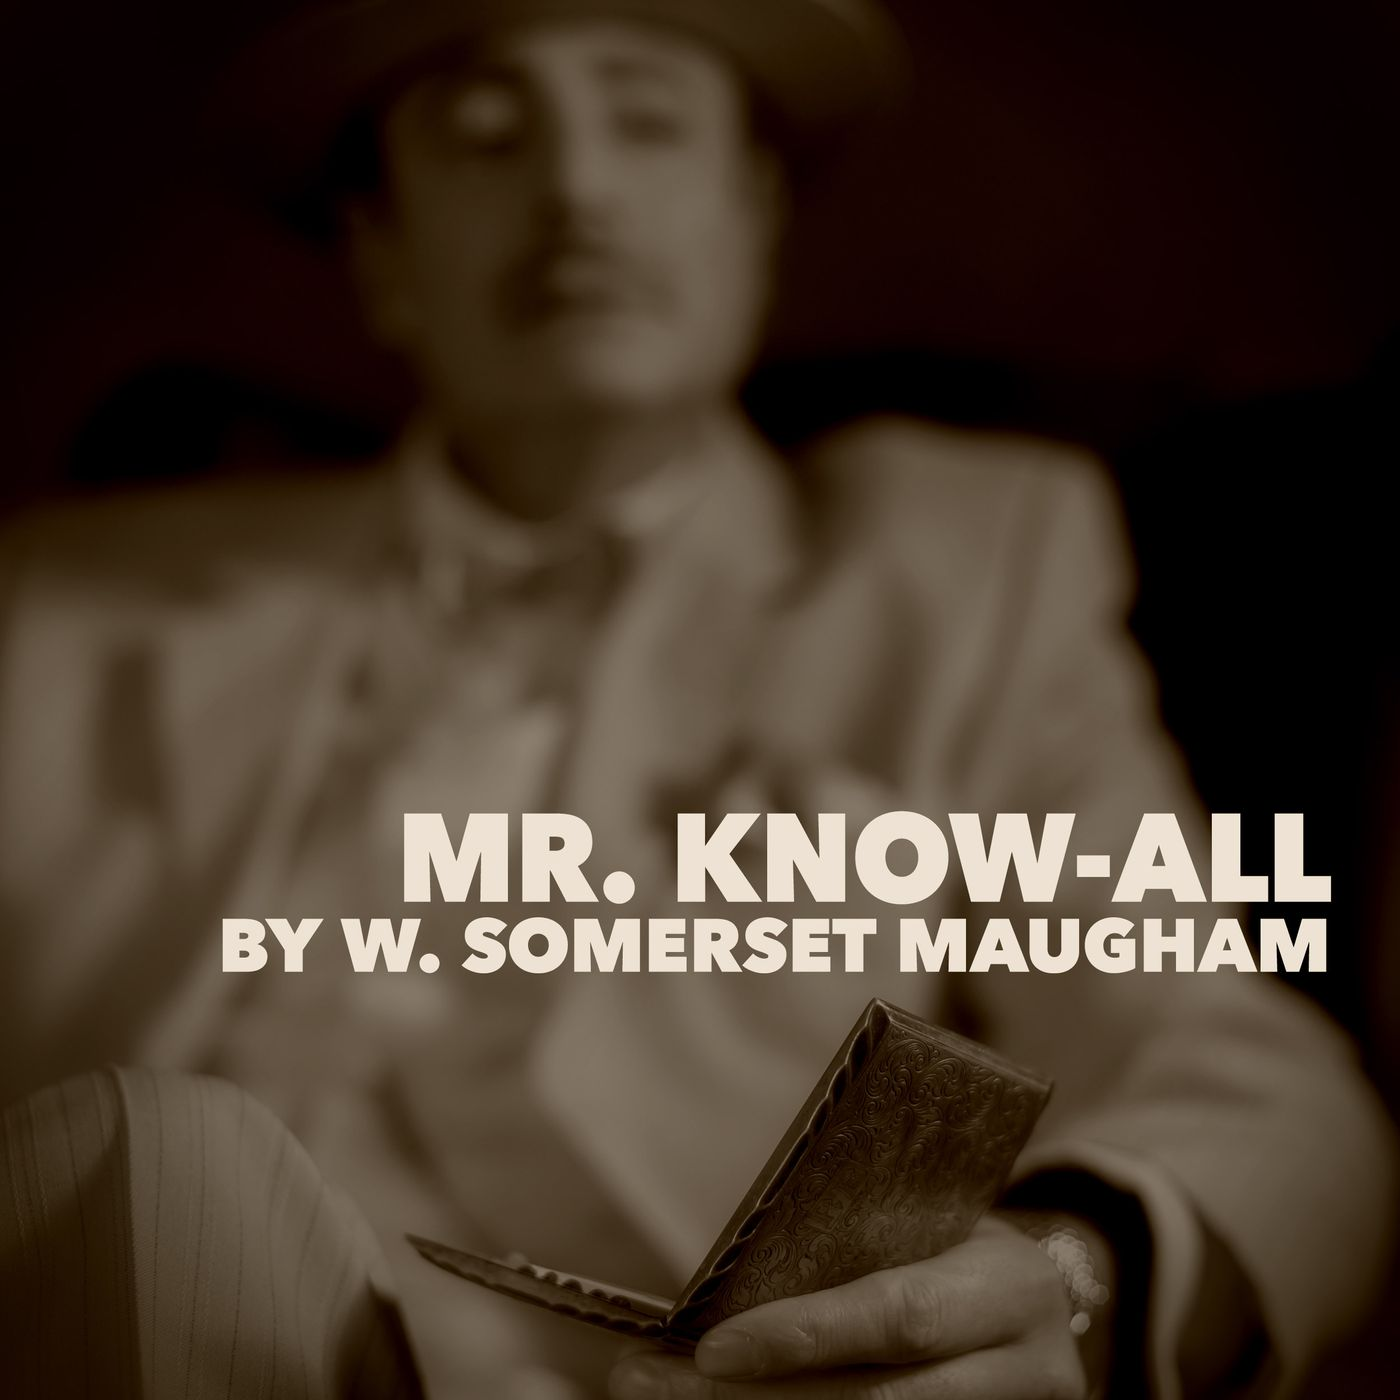 Mr. Know-All by W. Somerset Maugham